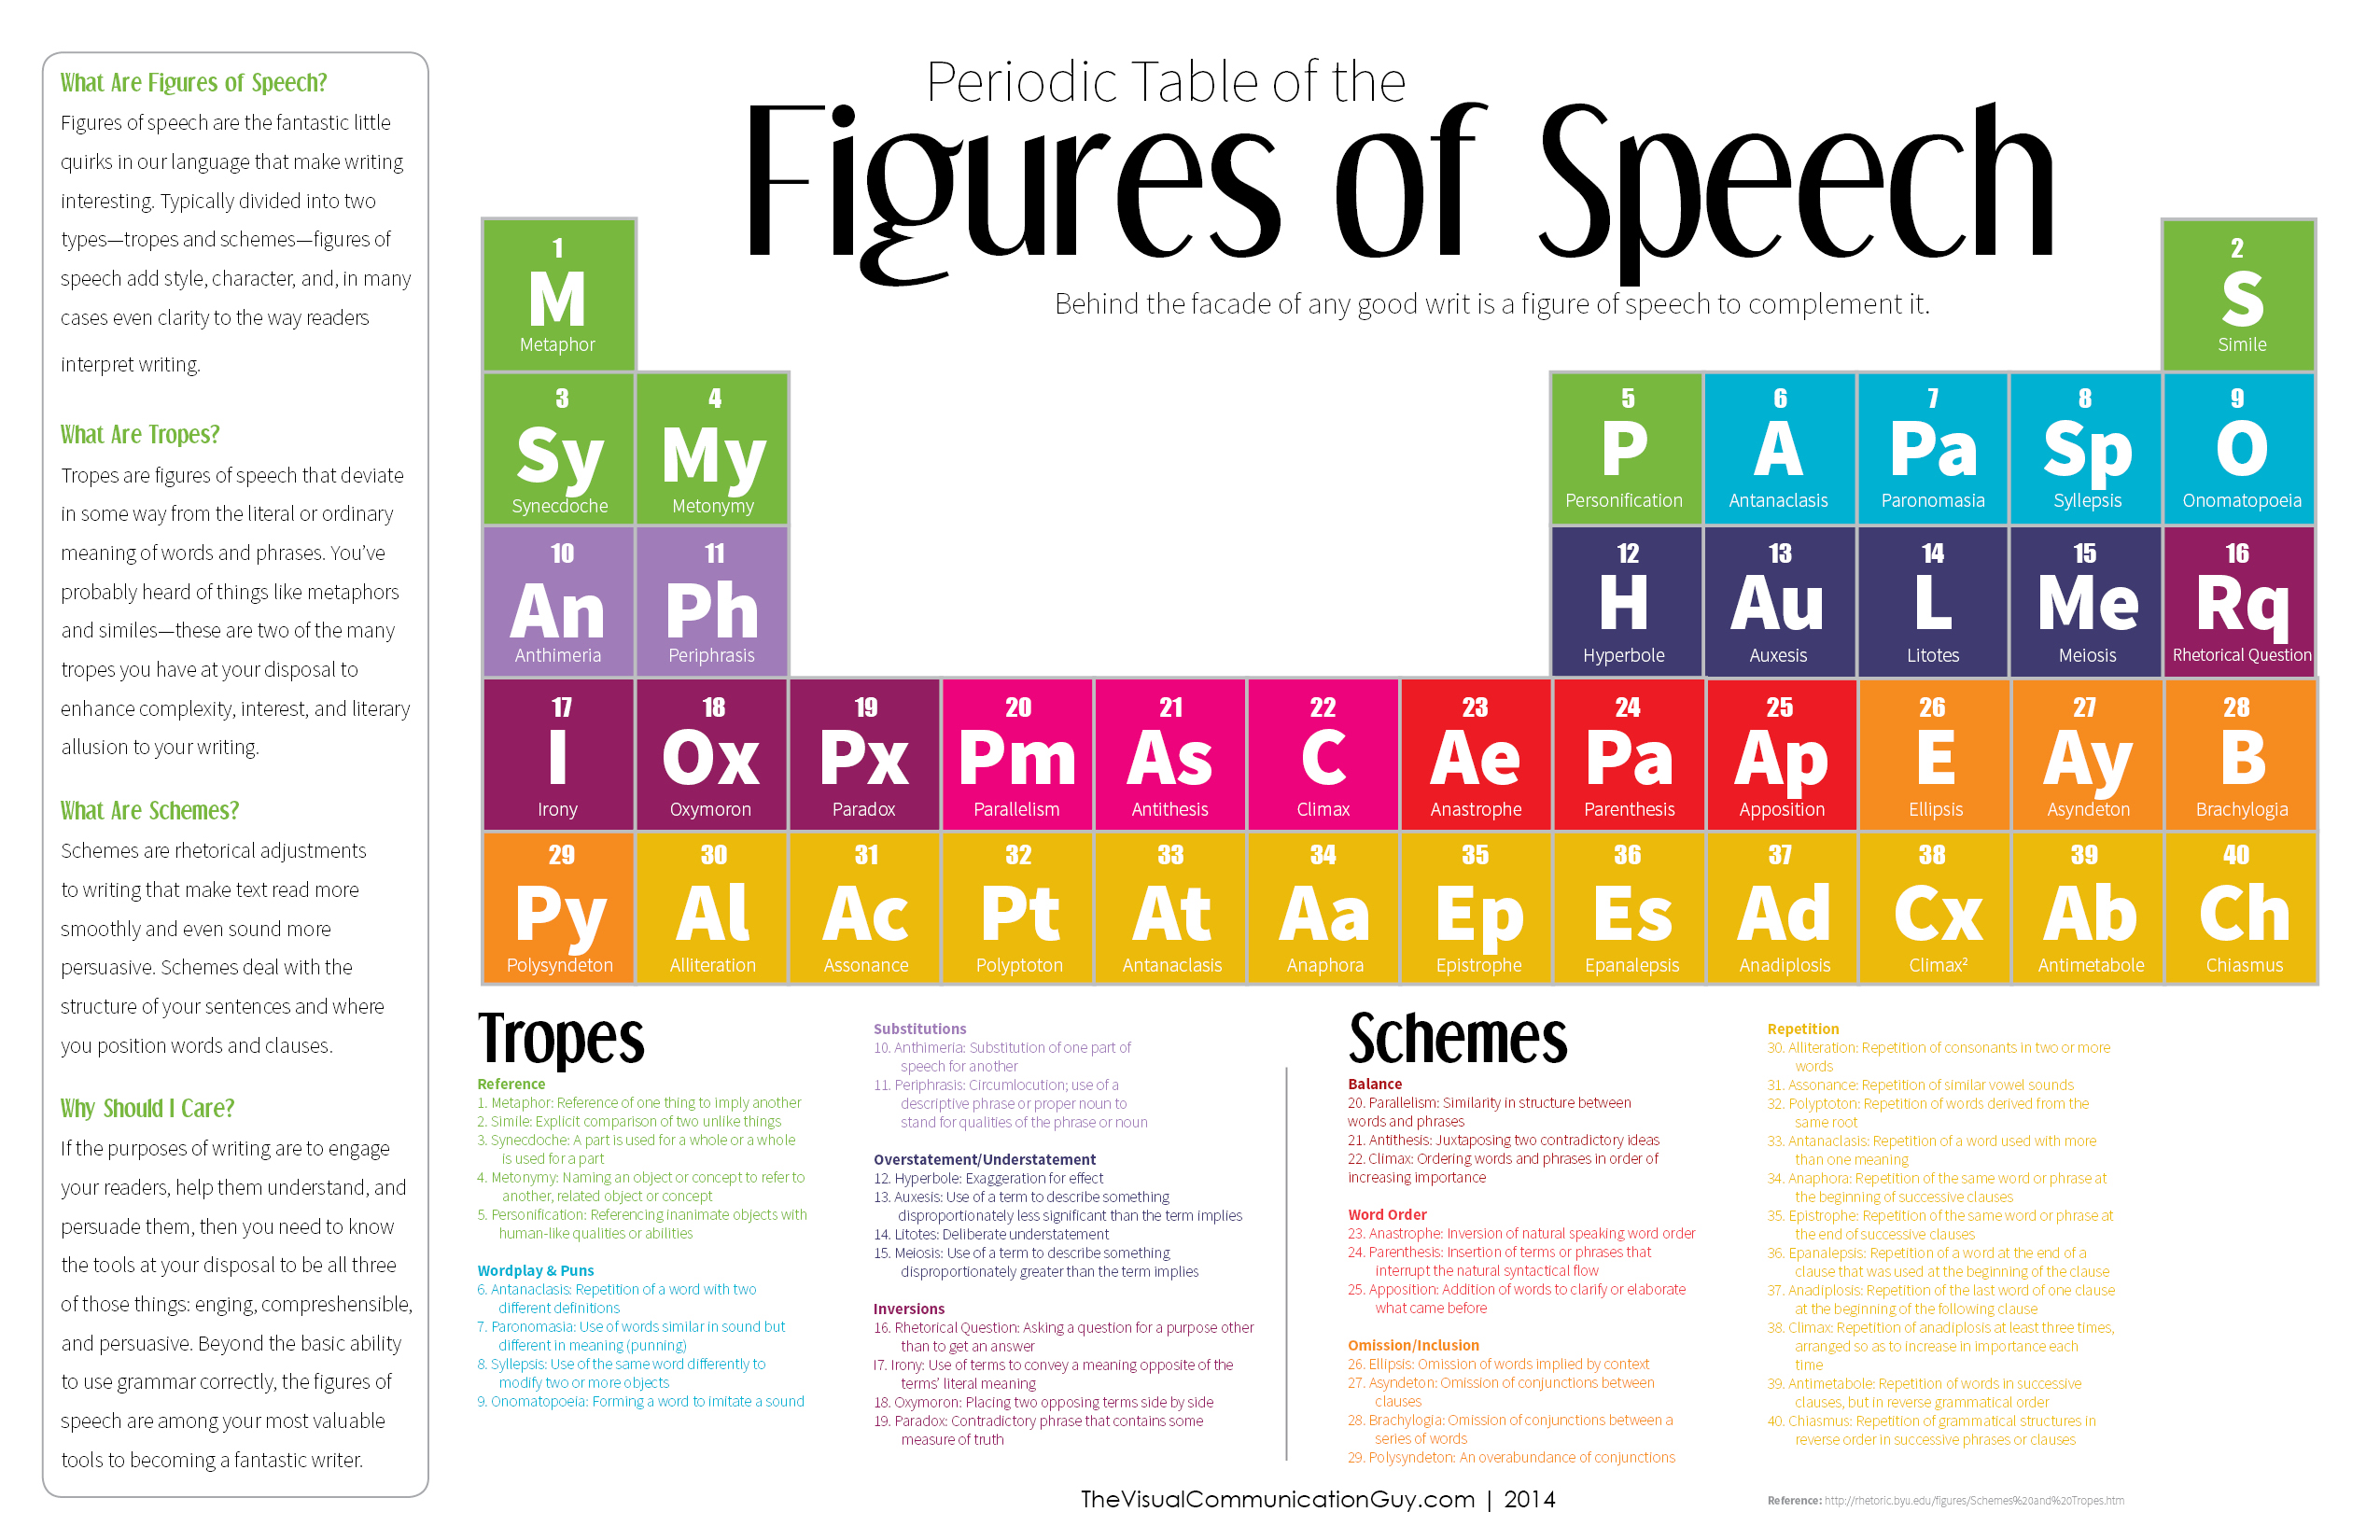 The Periodic Table Of The Figures Of Speech 40 Ways To Improve Your